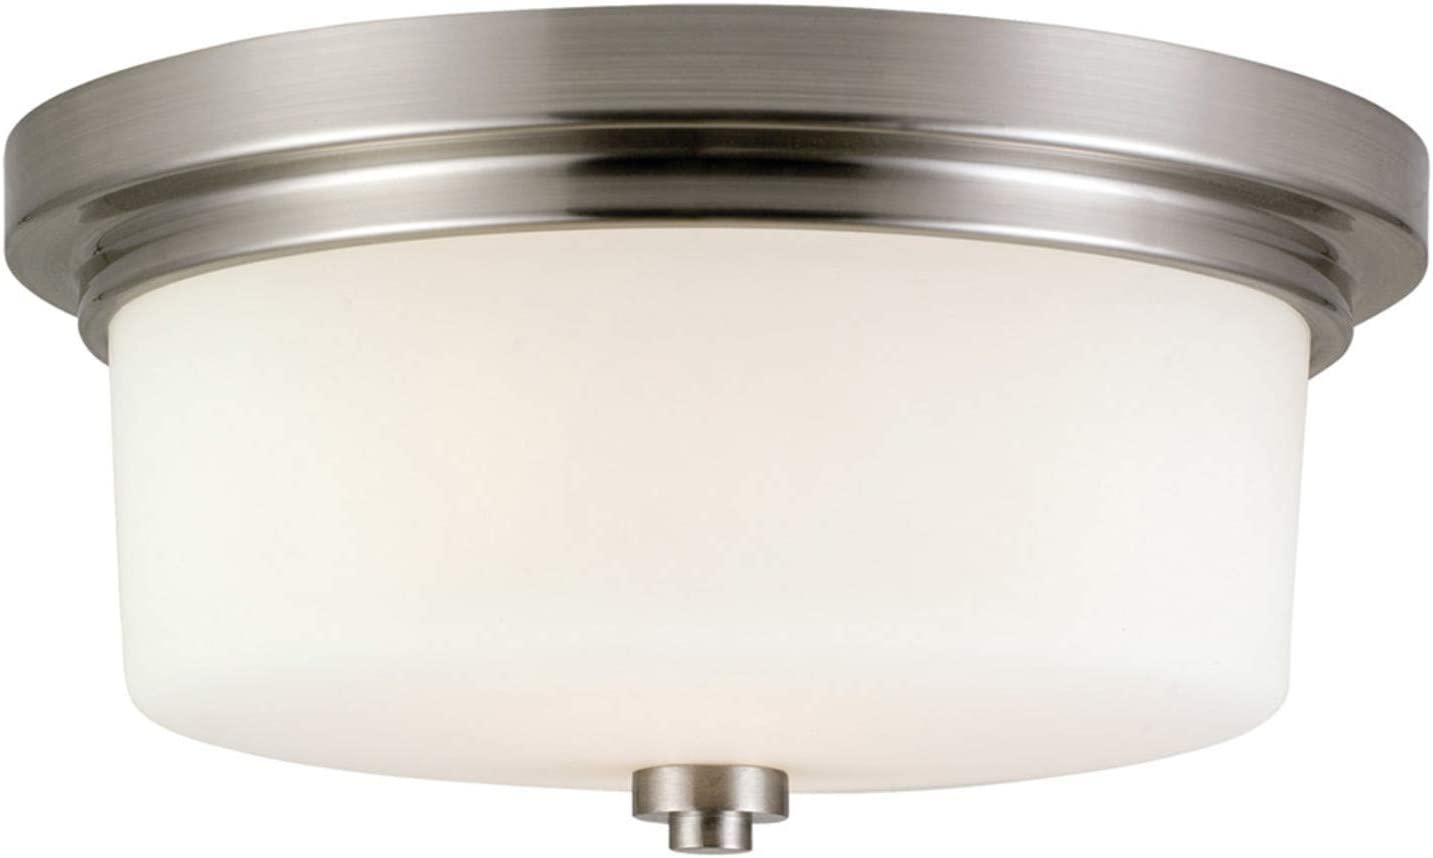 Design House 556654 Aubrey Transitional Indoor Light Dimmable Frosted Glass, 2-Light Ceiling Light, Satin Nickel - -